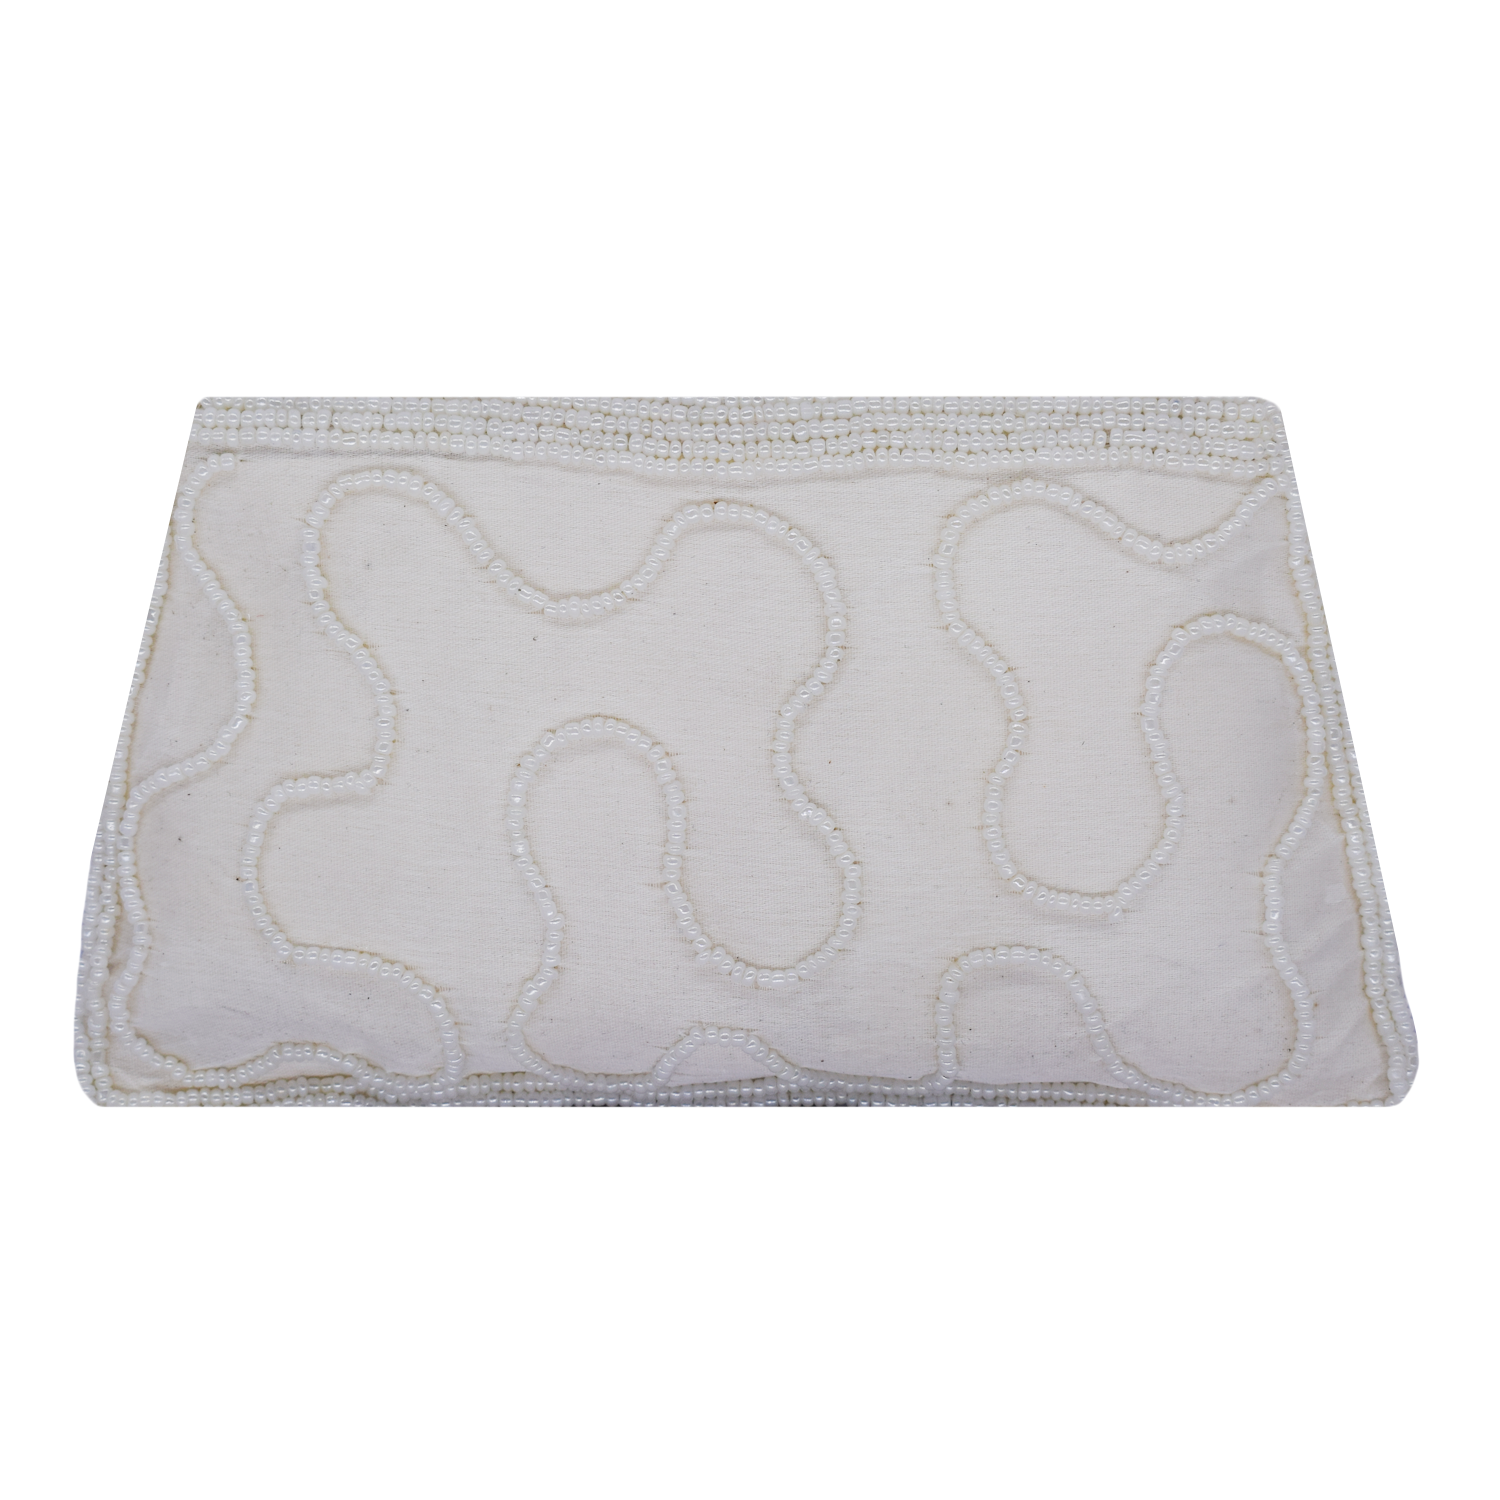 Ethnic Beads & Pearl Clutch Diamond Studded Clutch (White) - Bagaholics Gift